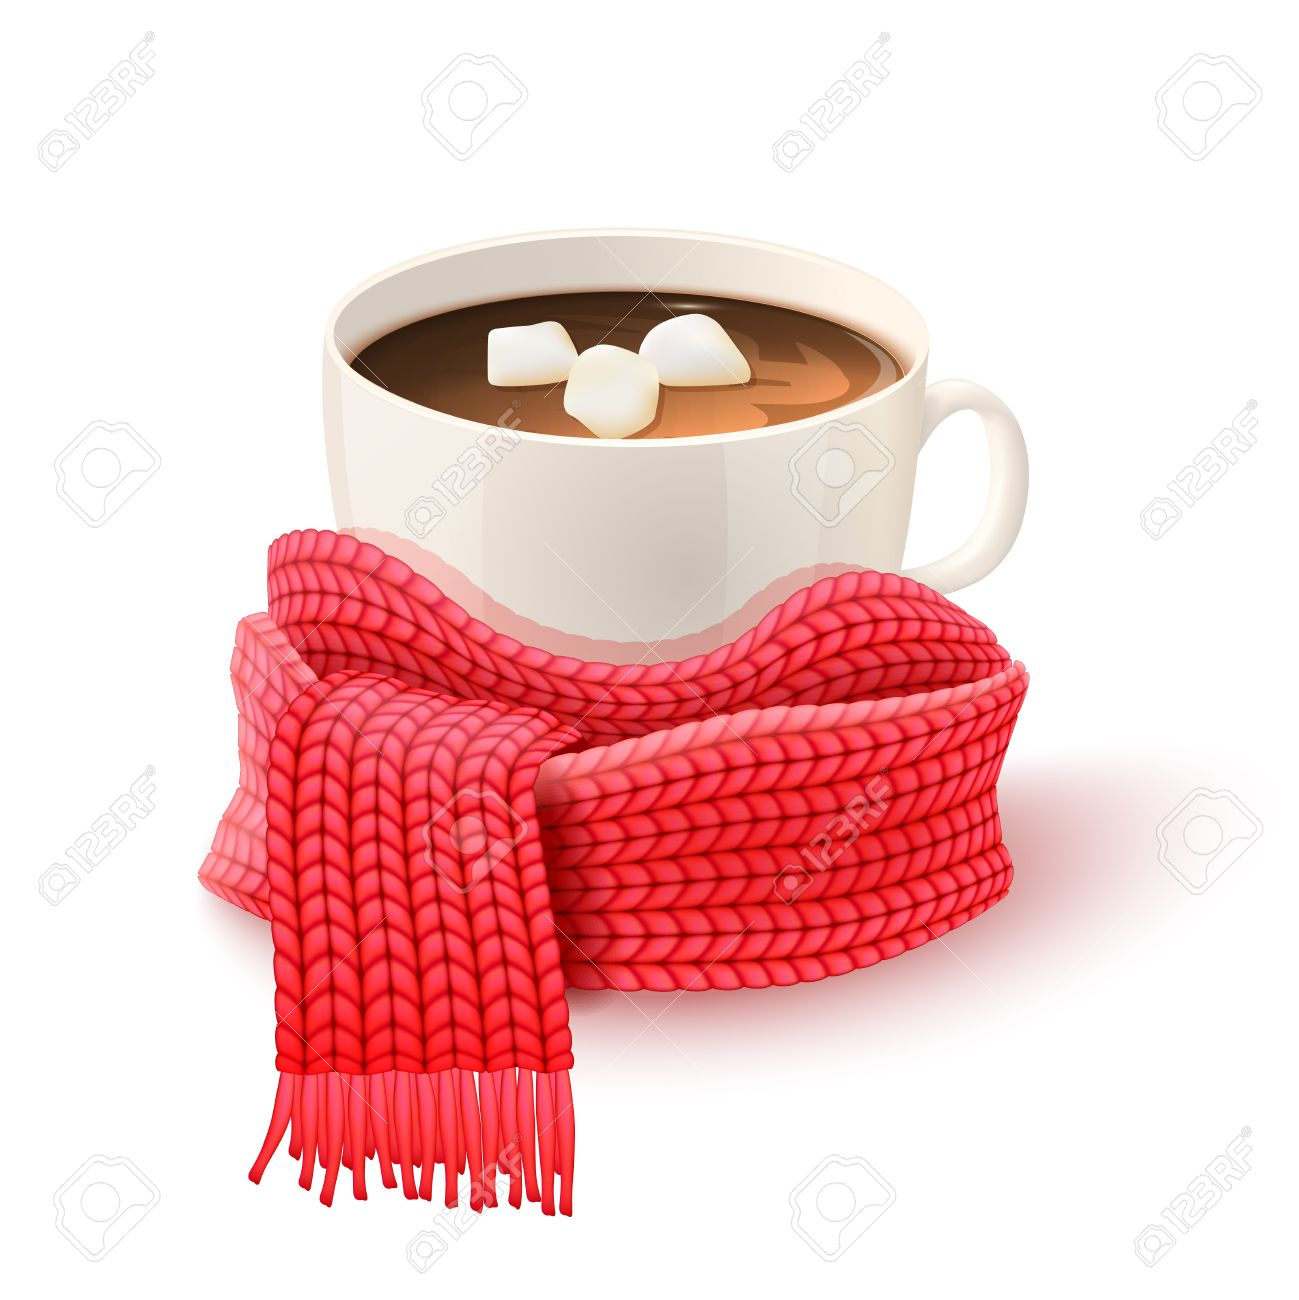 Cozy winter composition with hand knitted red scarf and white cup of hot chocolate print vector illustration - 51516885